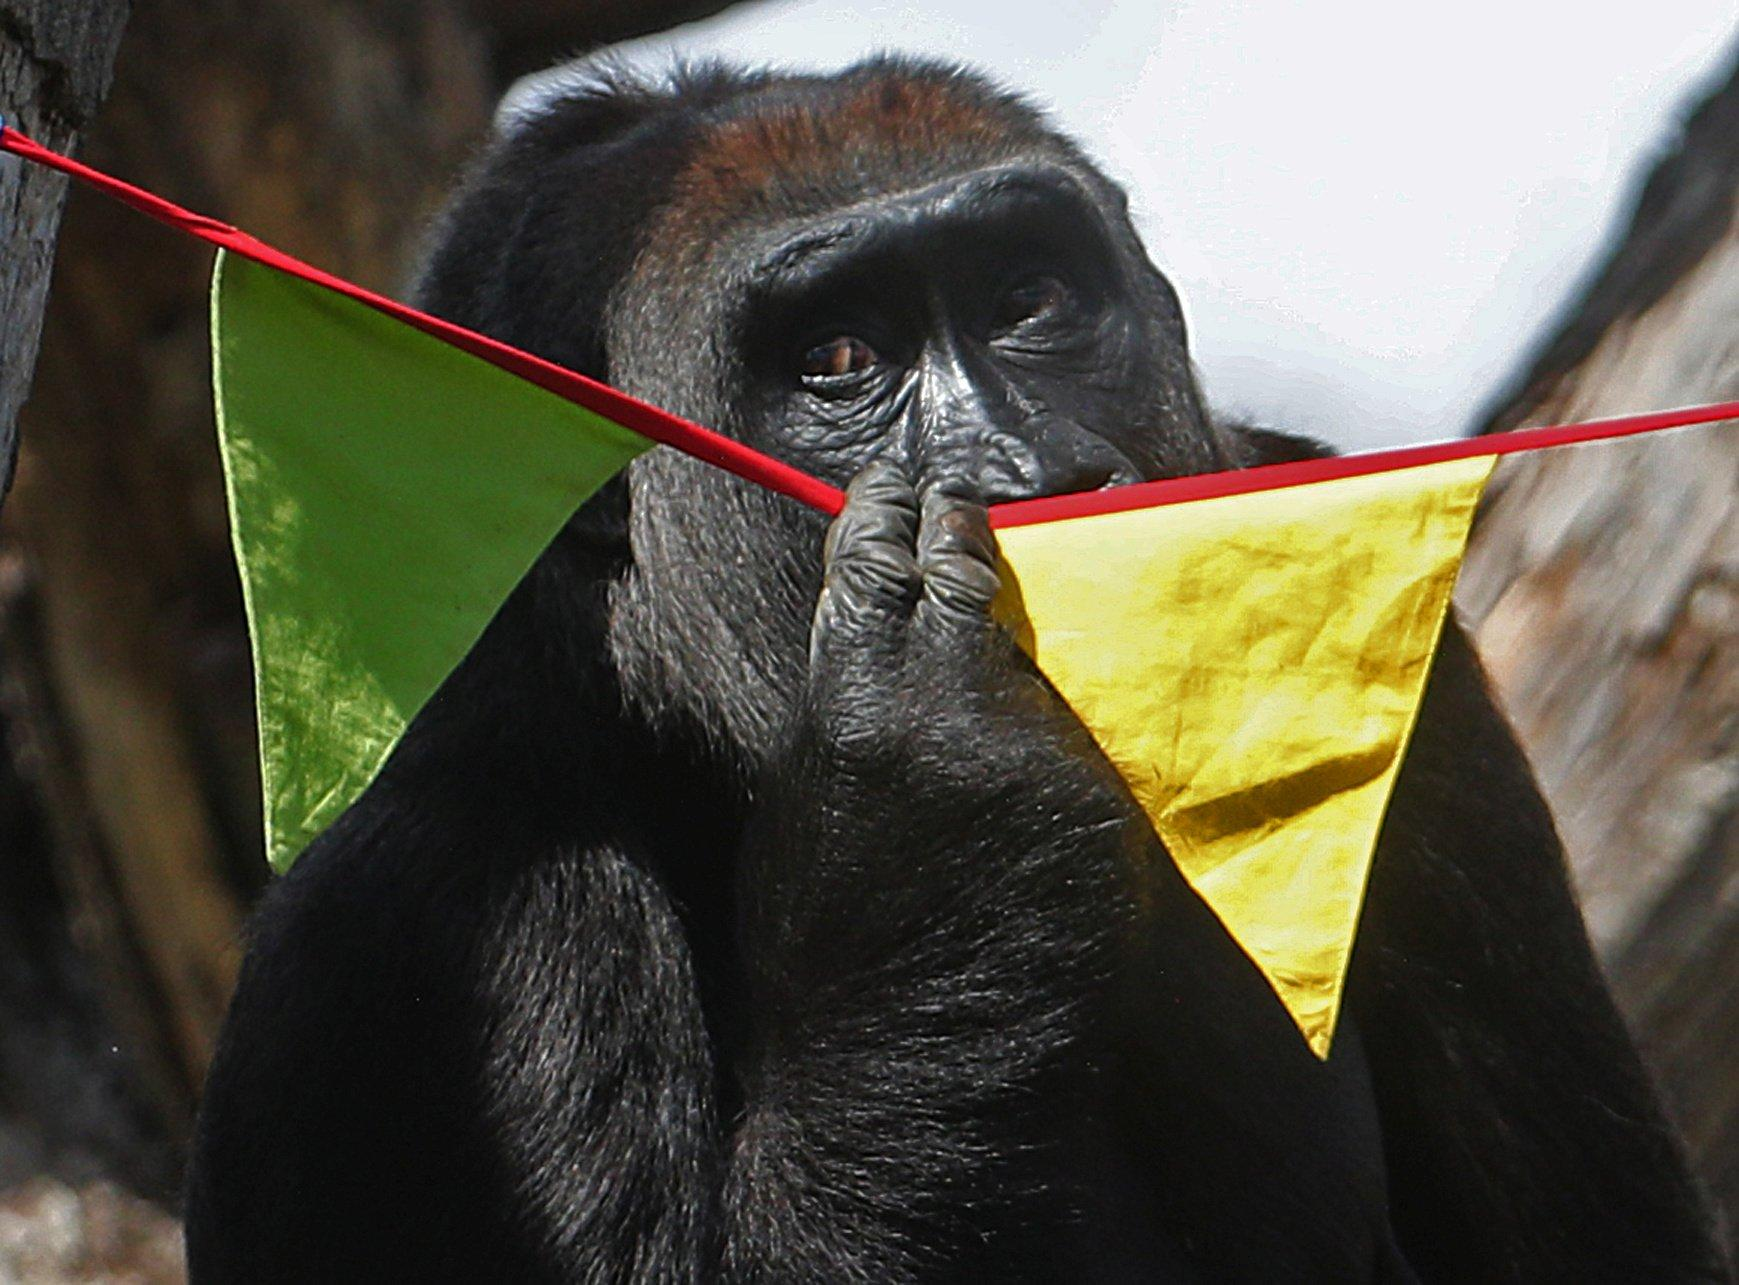 Need a bit more human contact? So do London Zoo's gorillas! - GLOBAL HEROES MAGAZINE